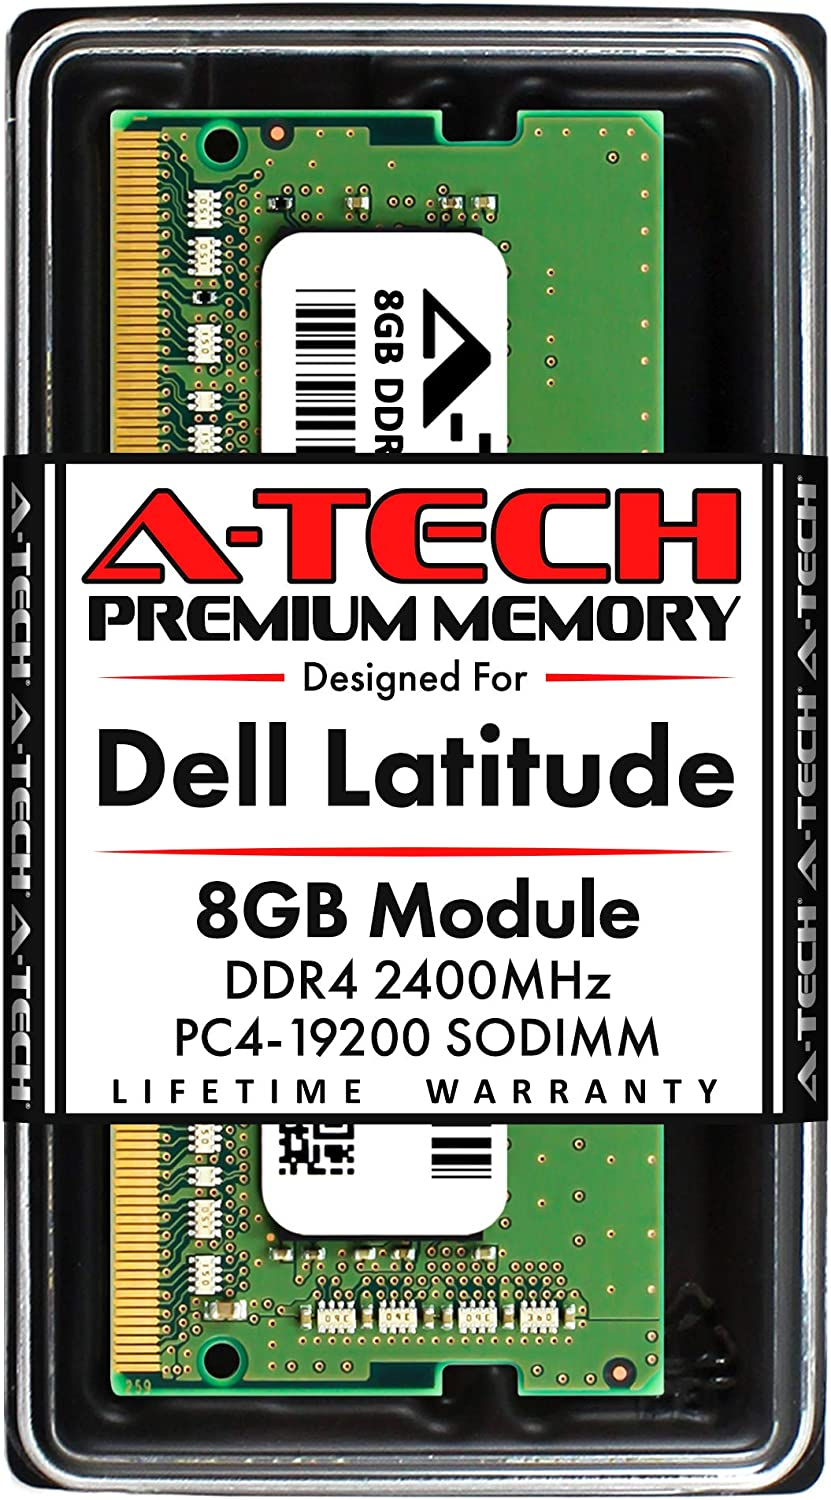 A-Tech 8GB RAM for Dell Latitude 7400, 7300, 5500, 5400, 5300, 3500, 3400, 3300 | DDR4 2400MHz SODIMM PC4-19200 Laptop Memory Upgrade Module